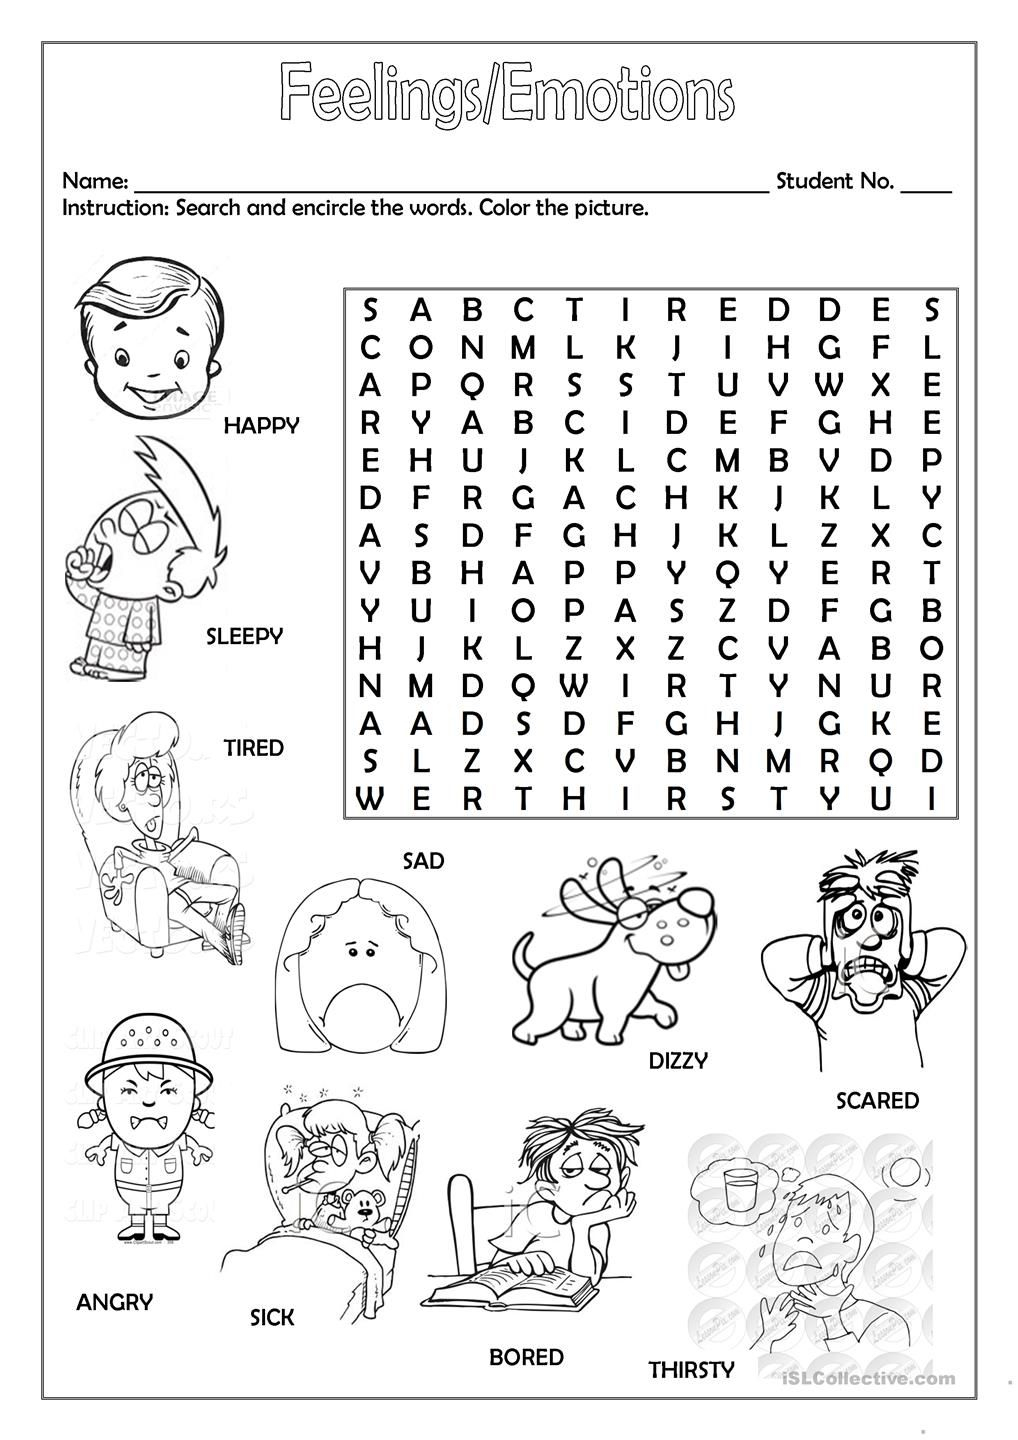 Feelings/emotions | Esl Worksheets Of The Day | English Lessons - Printable Feelings Puzzle